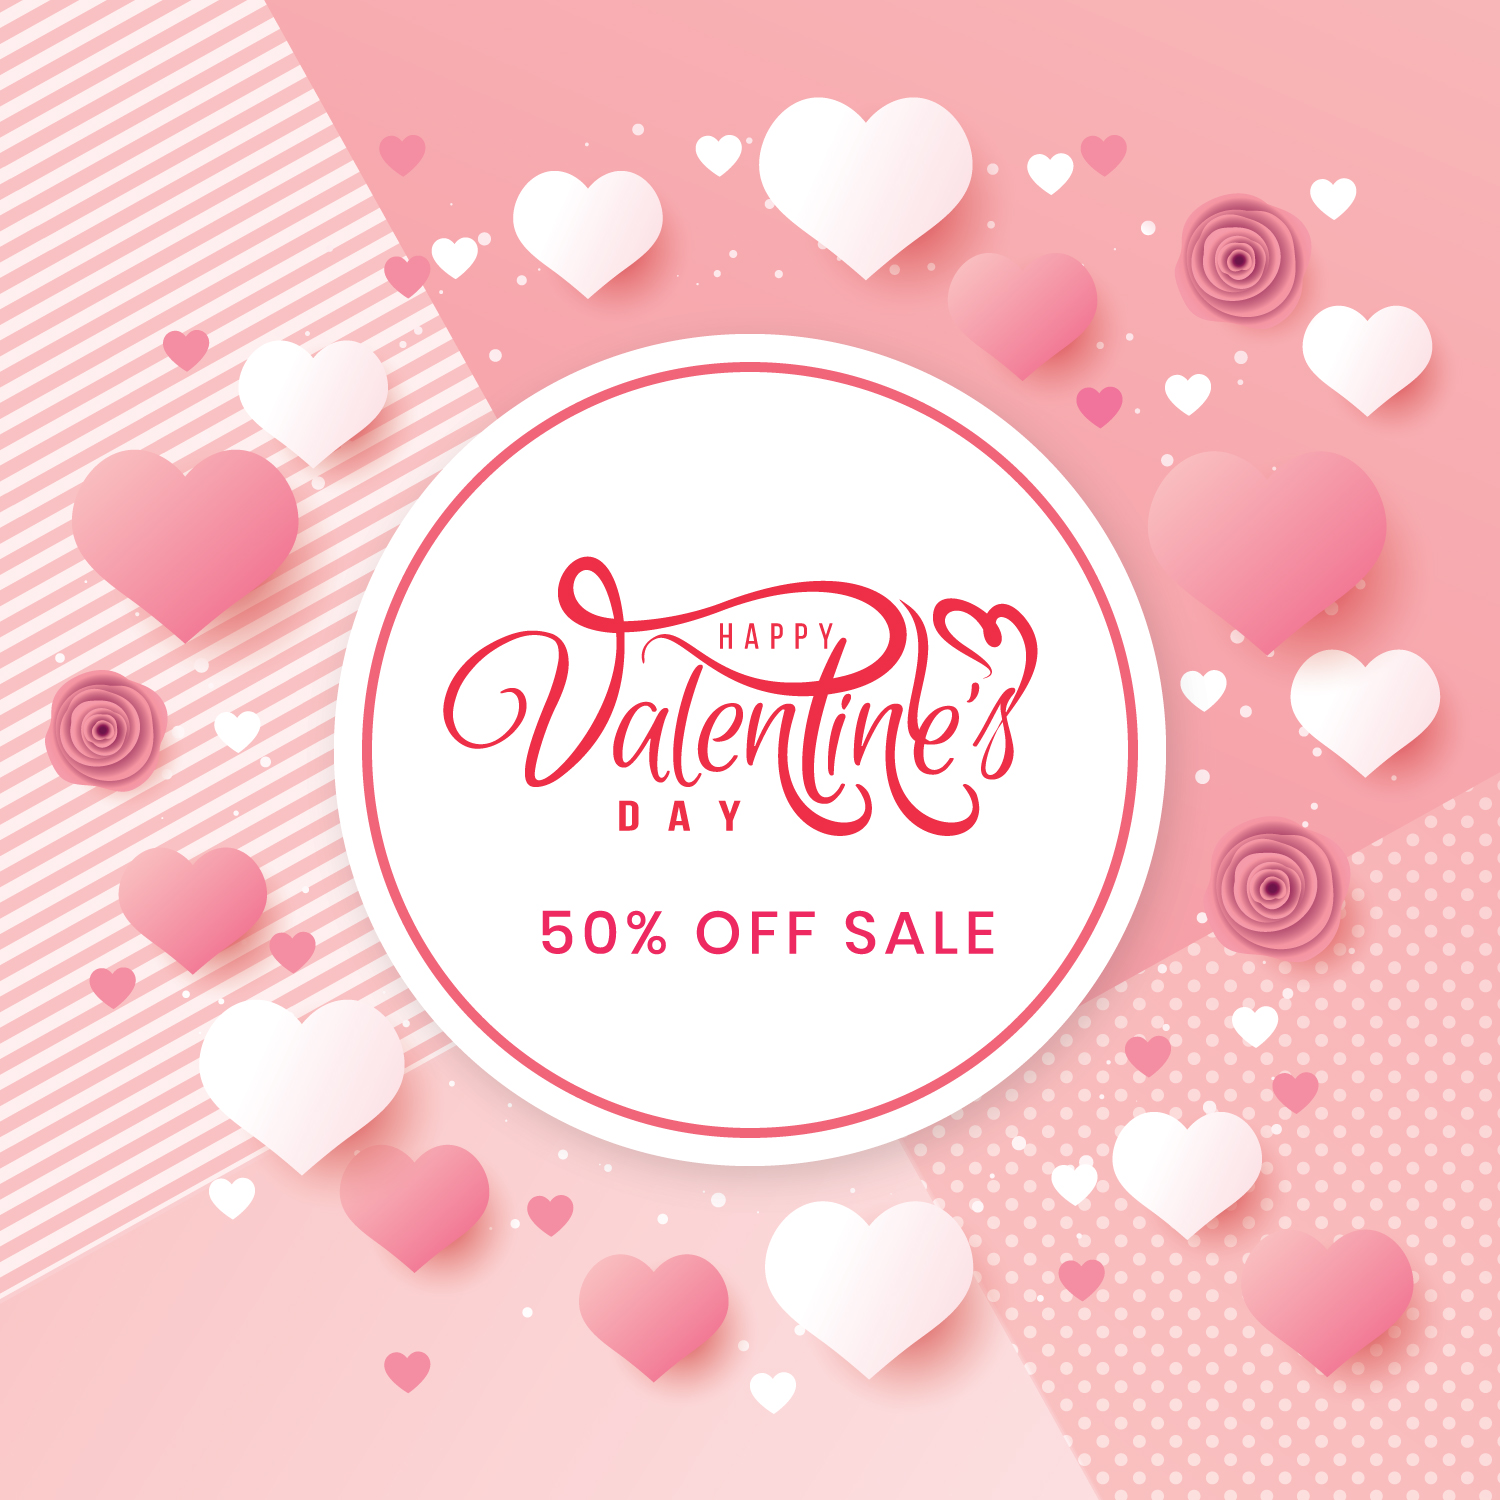 Download the wonderful and elegant Vector Hearts design for Valentine's Day and happy marital occasions